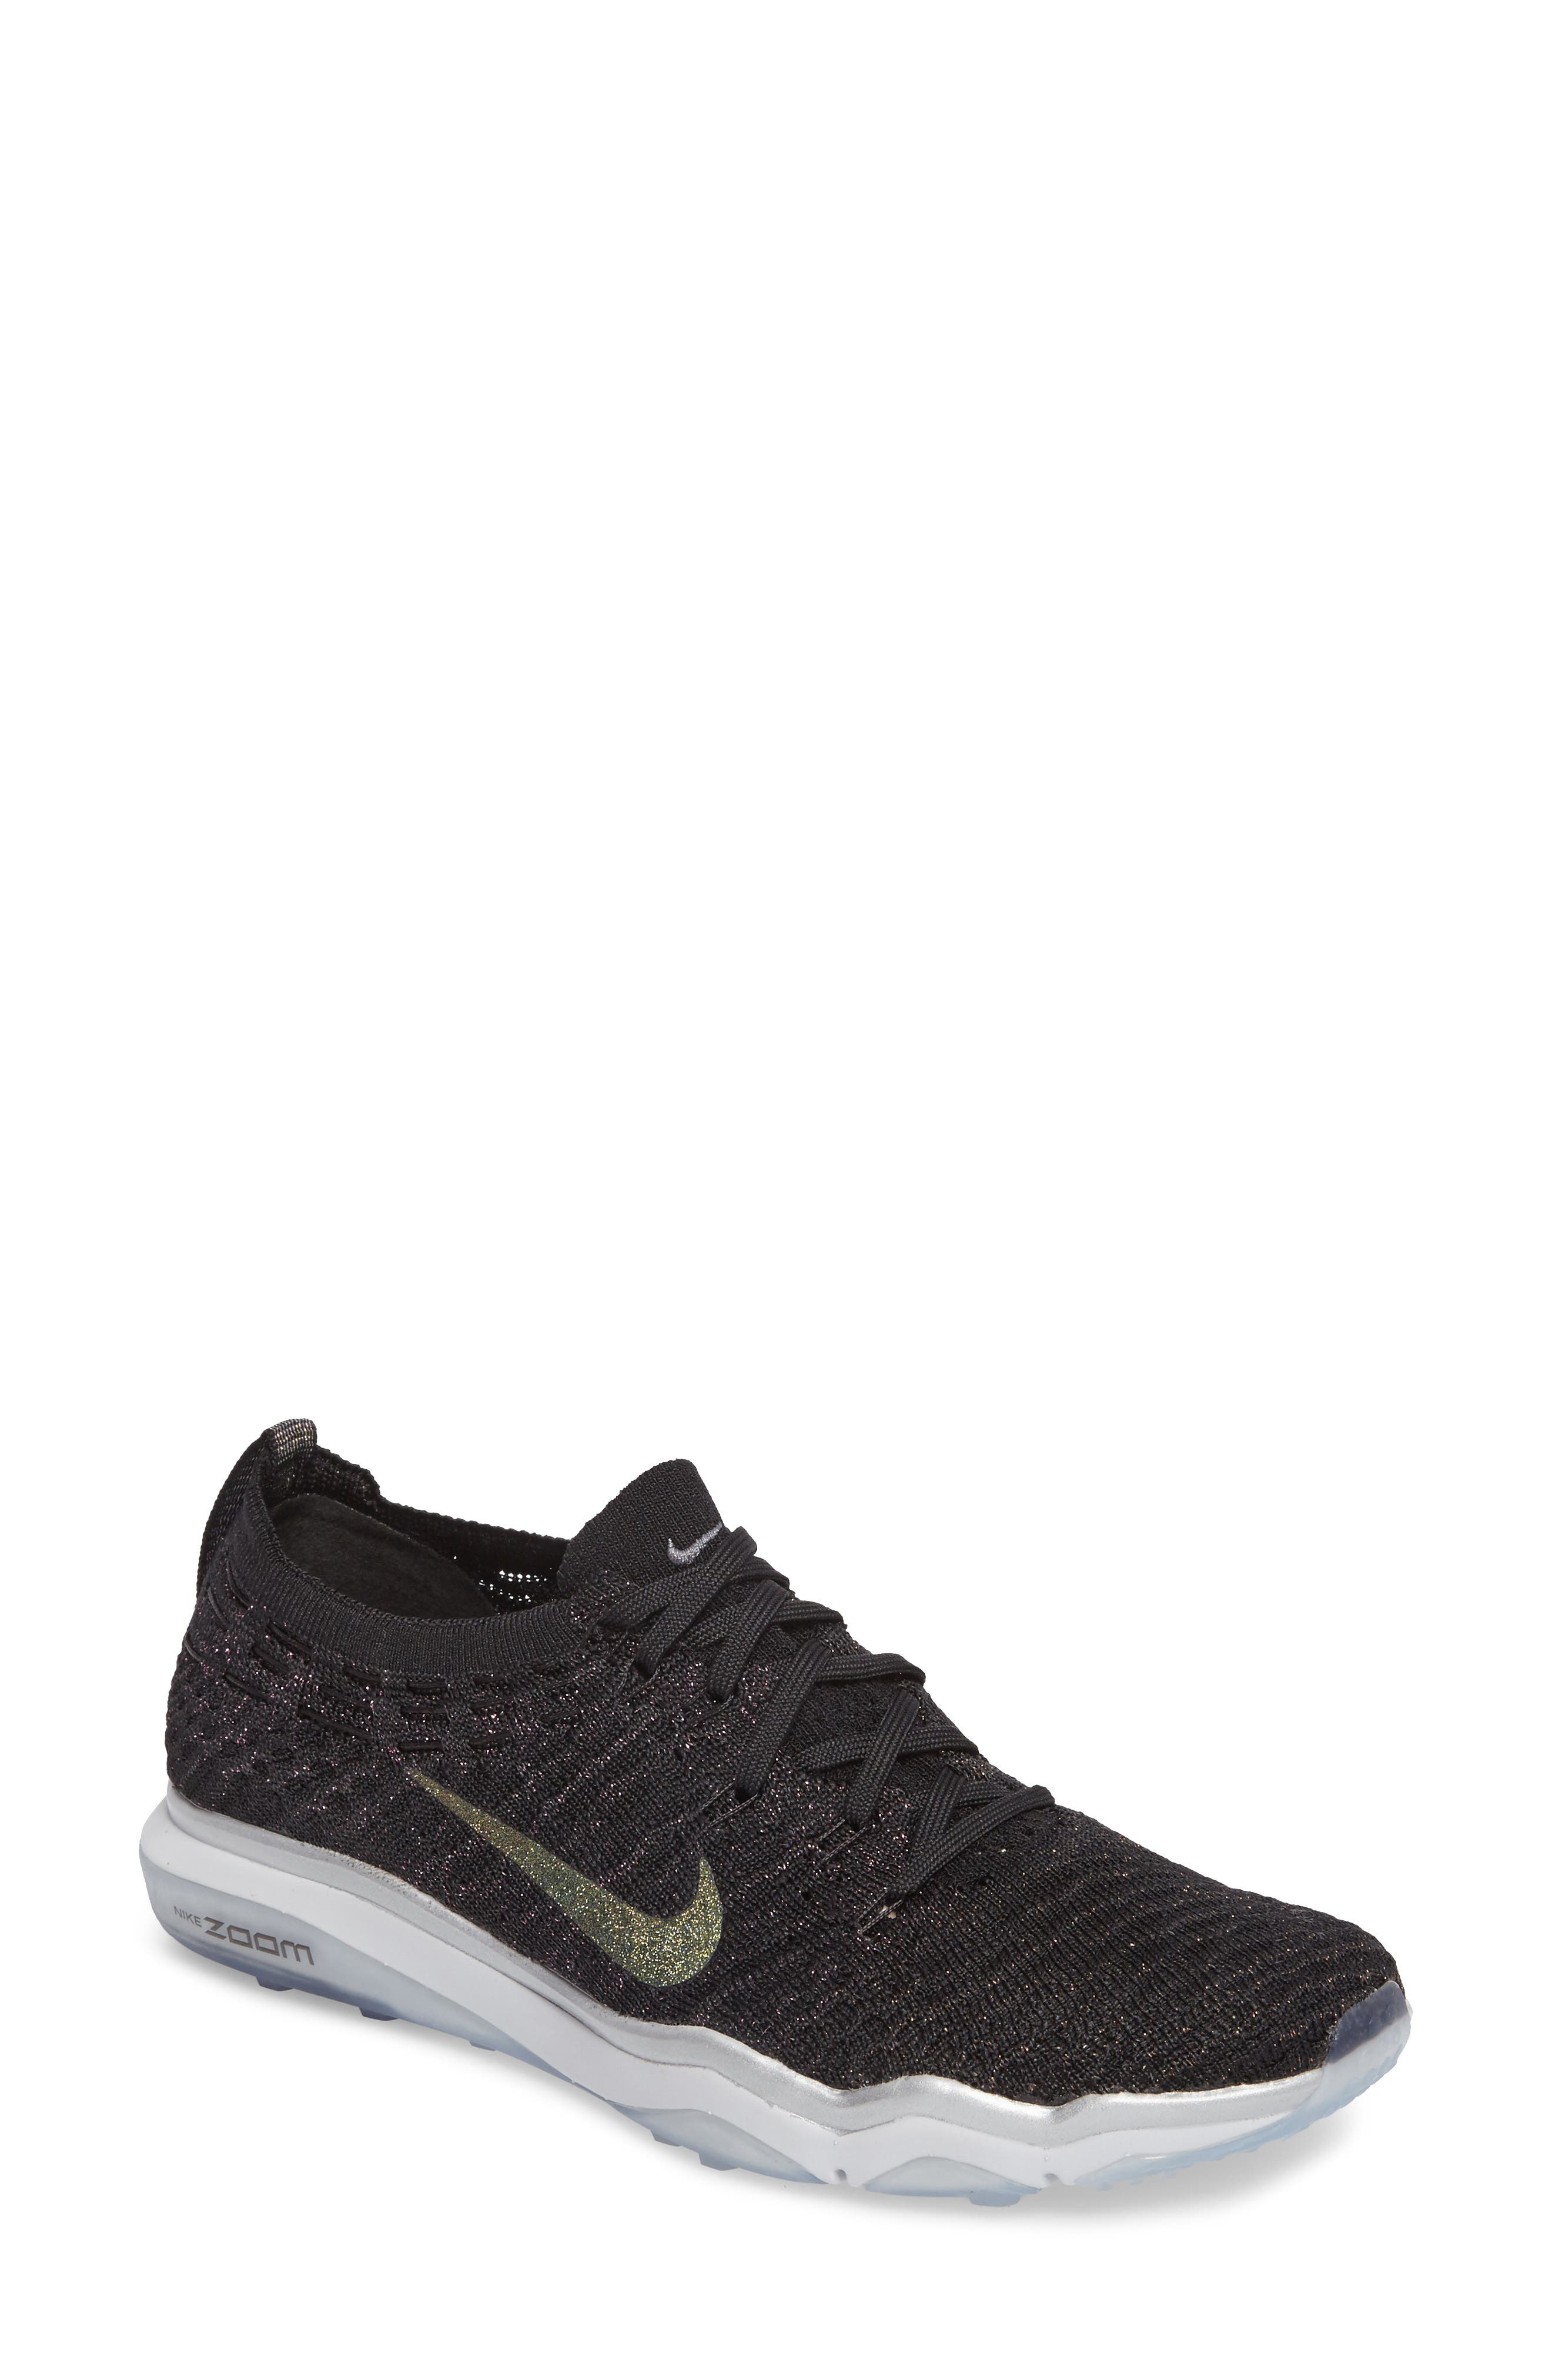 Air Zoom Fearless Flyknit Metallic Training Shoe,                             Main thumbnail 1, color,                             001